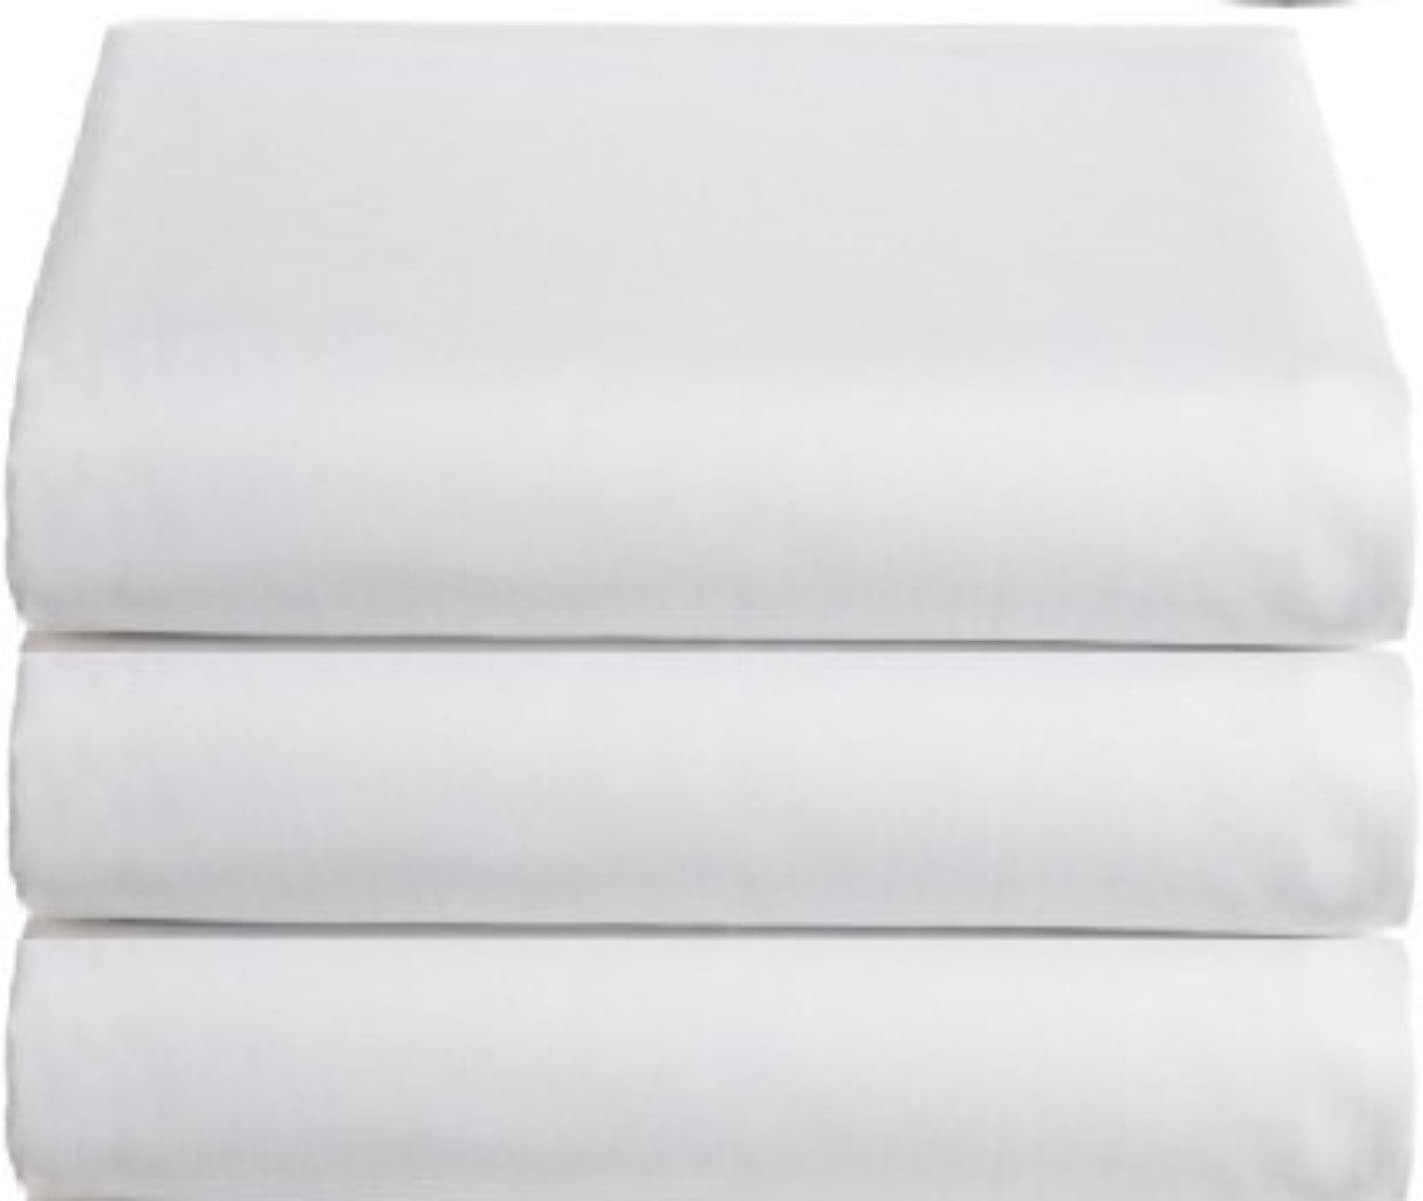 White Classic Flat Hospital Bed Sheets, Twin Size Flat Sheets, 3-Pack,: Home & Kitchen